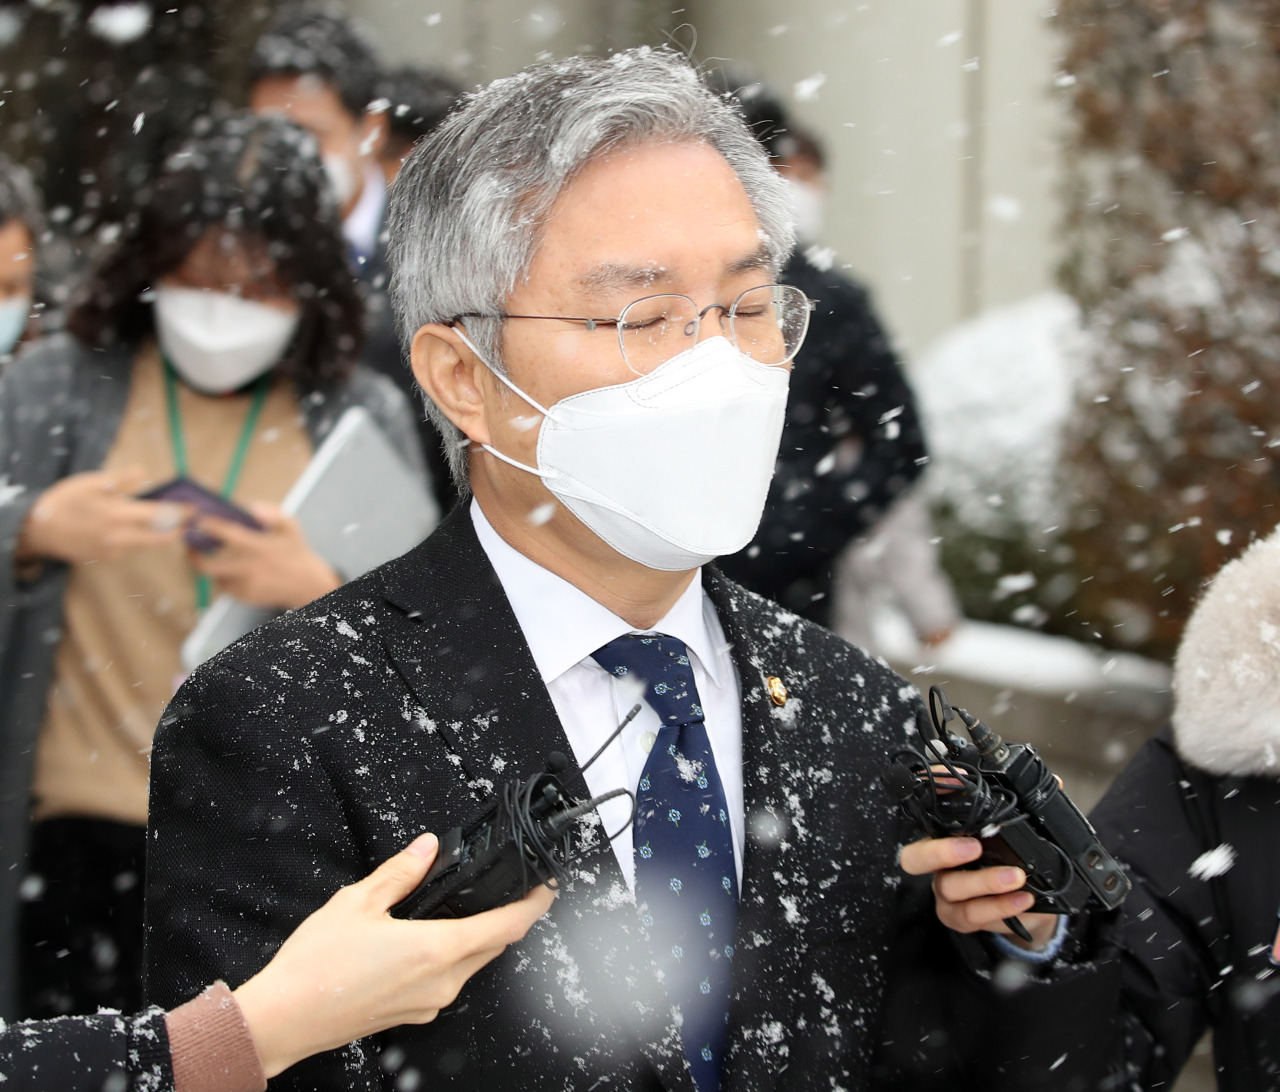 Rep. Choe Kang-wook, the chief of the minor Open Democratic Party, walks out of the Seoul Central District Court on Thursday, after he was given a suspended prison sentence for forging an internship certificate for former Justice Minister Cho Kuk's son. (Yonhap)